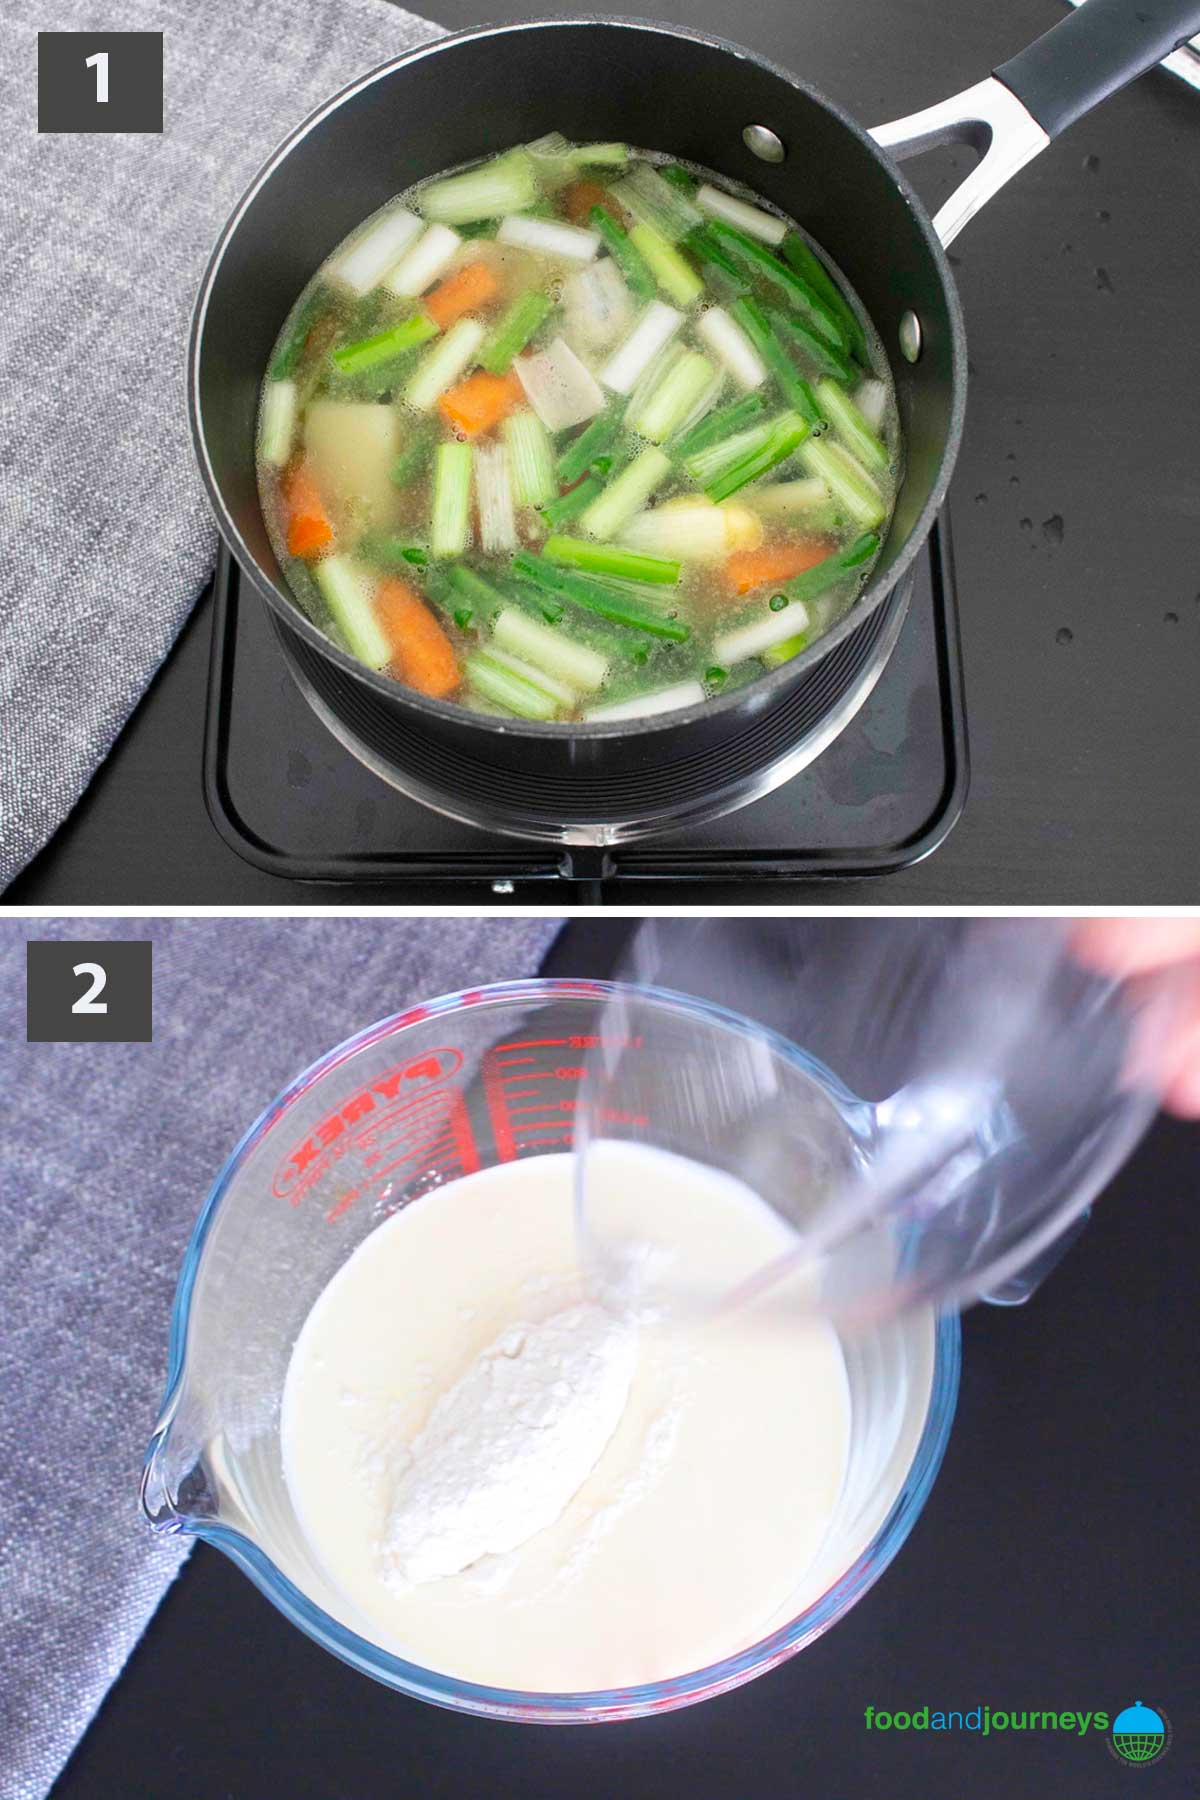 First part of a collage of images showing the step by step process on how to make Finnish Summer Soup